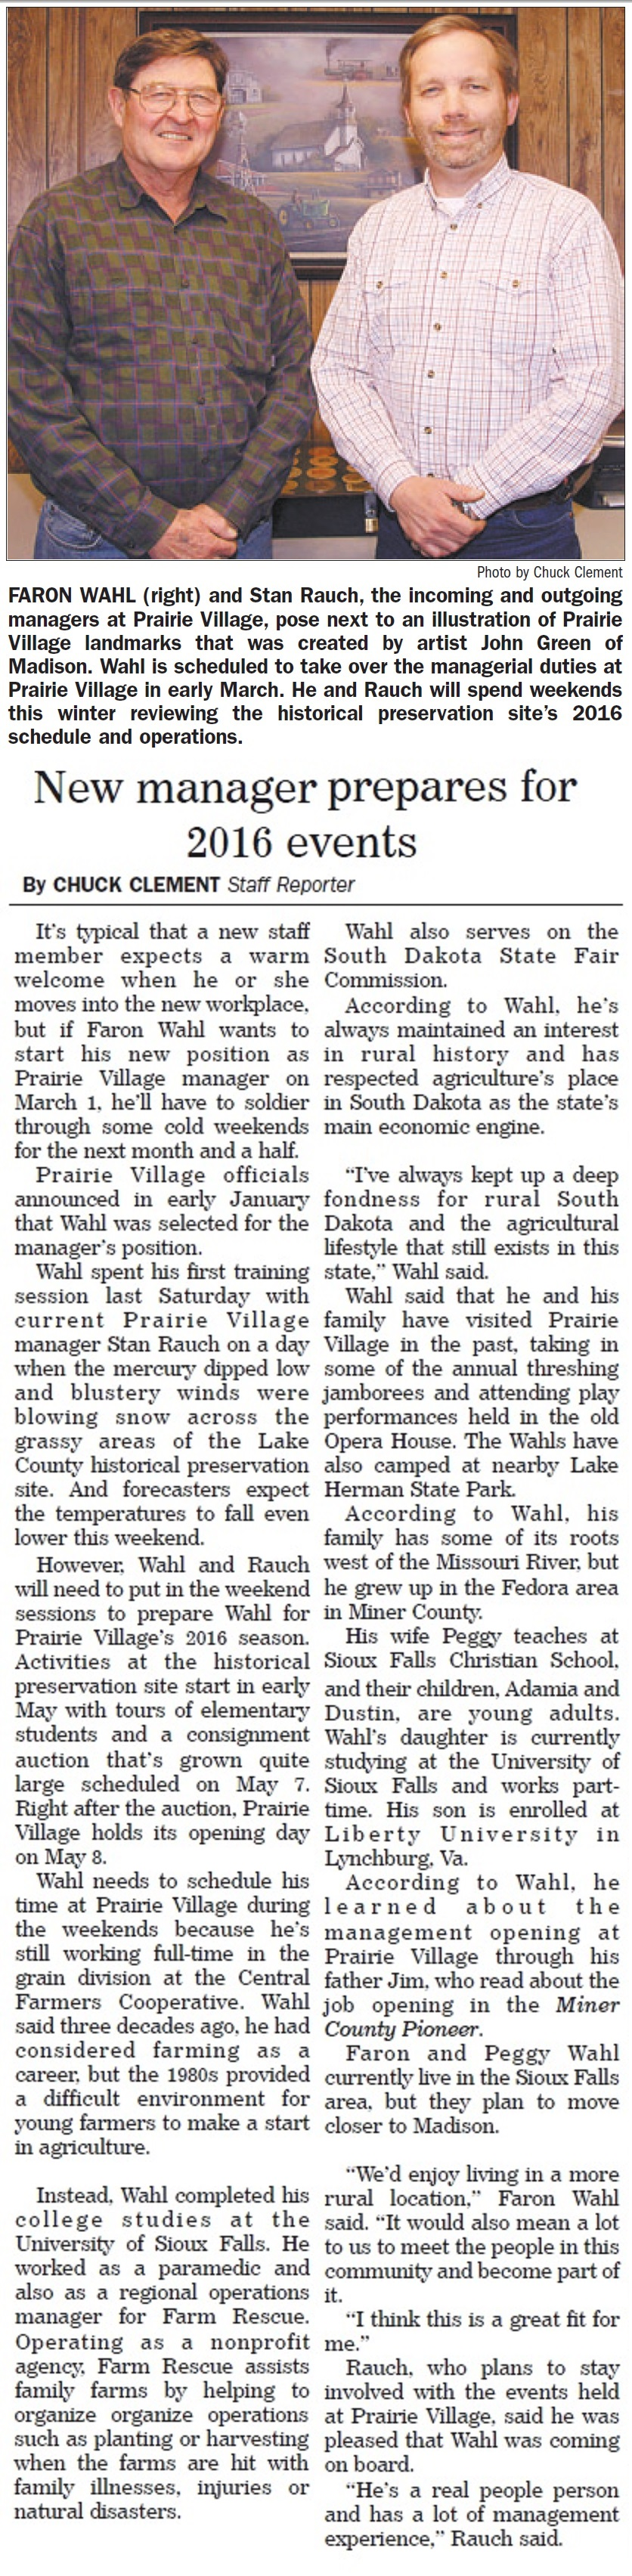 Wahl learns Prairie Village operations